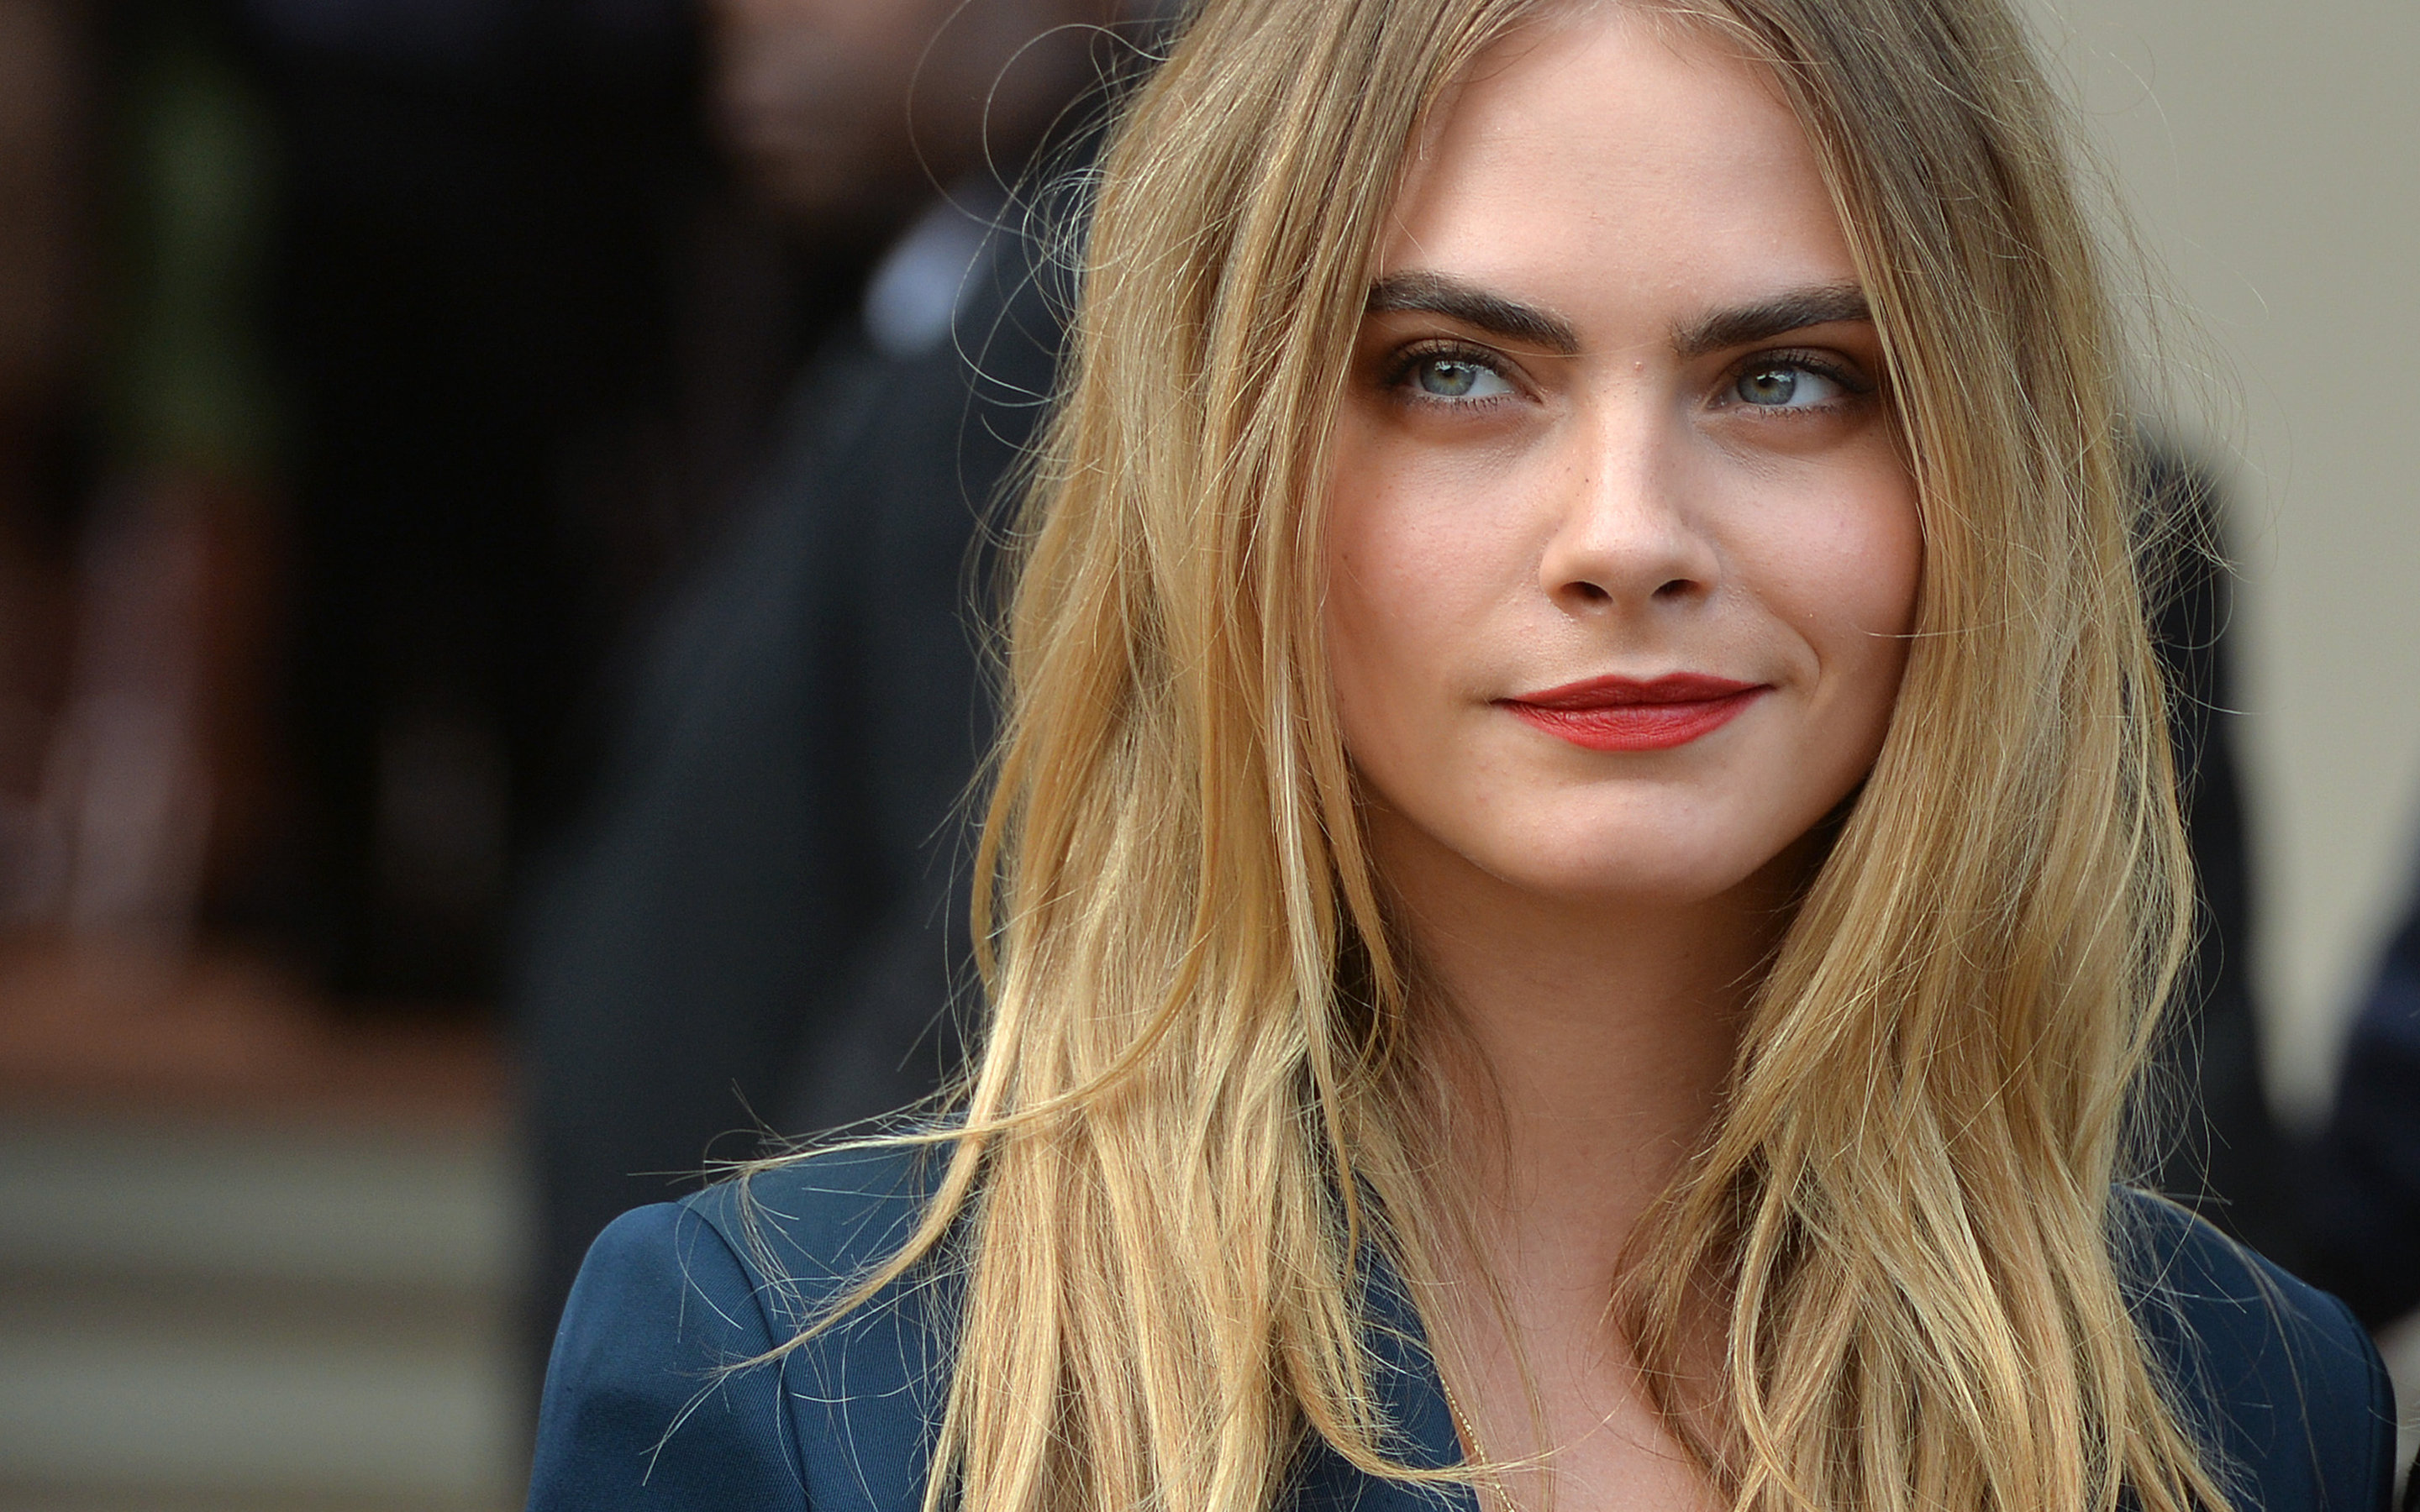 Cara Delevingne Wallpapers Hd For Desktop Backgrounds